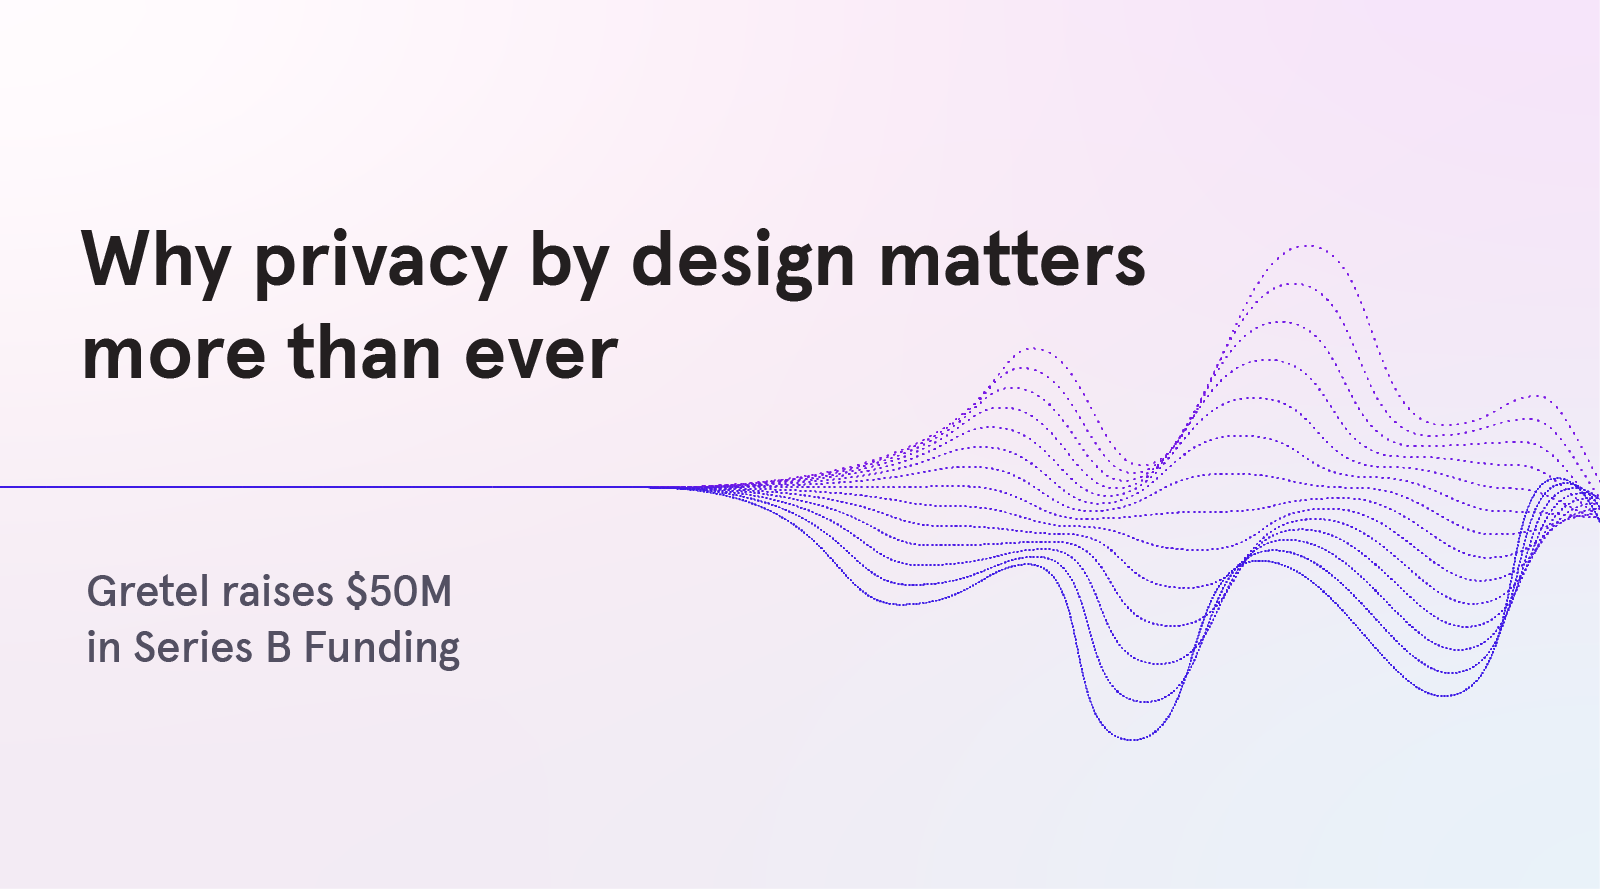 Why privacy by design matters more than ever